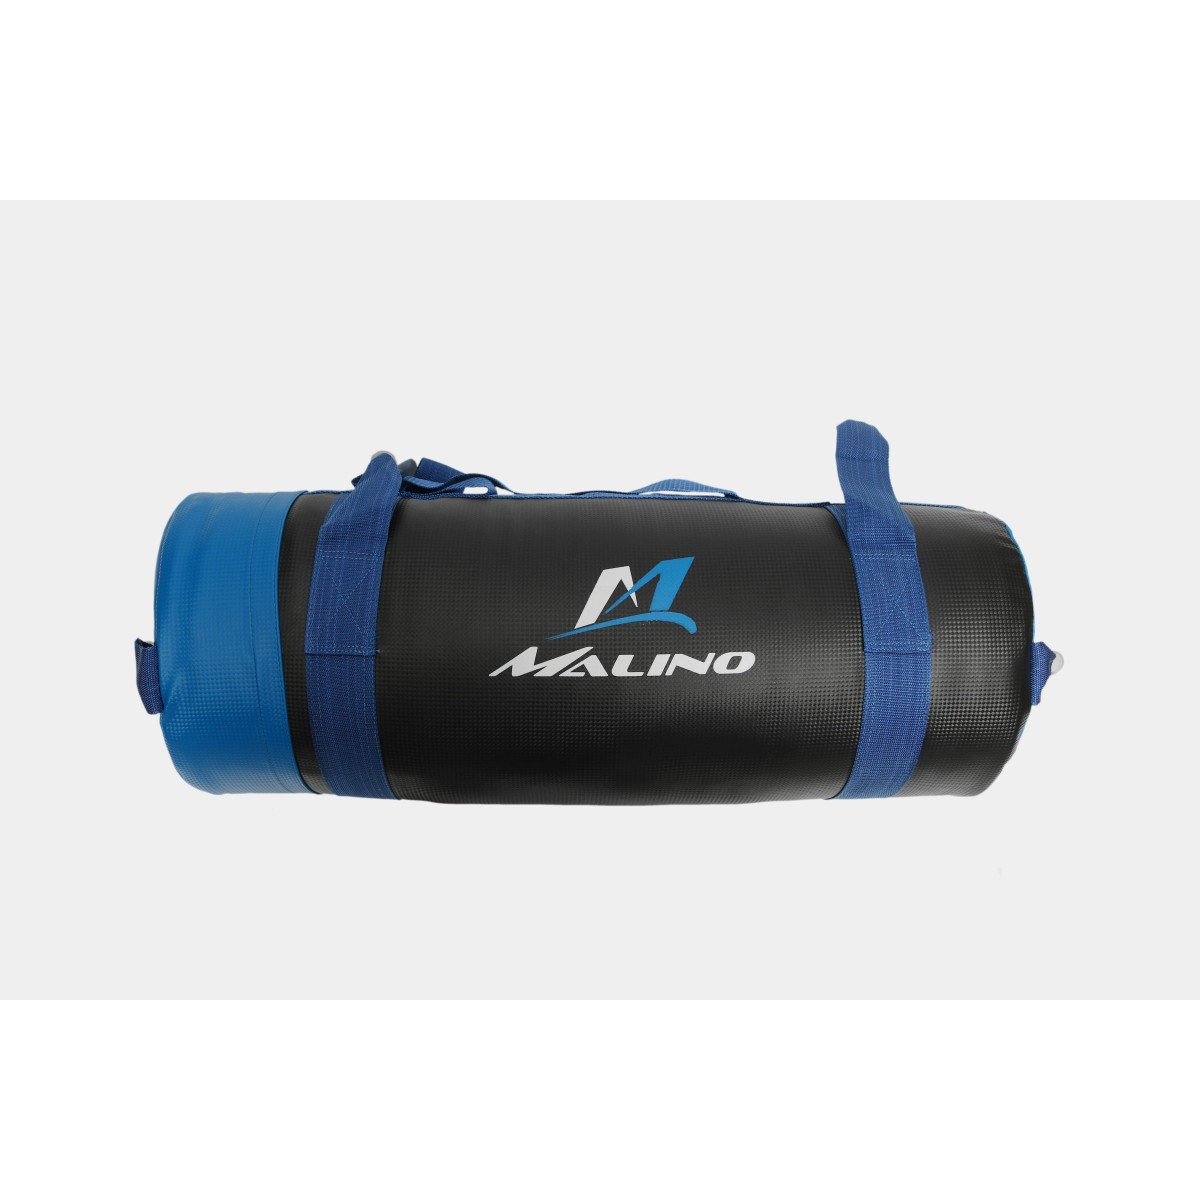 Malino Premium Weight Lifting Sand Bag Black Blue